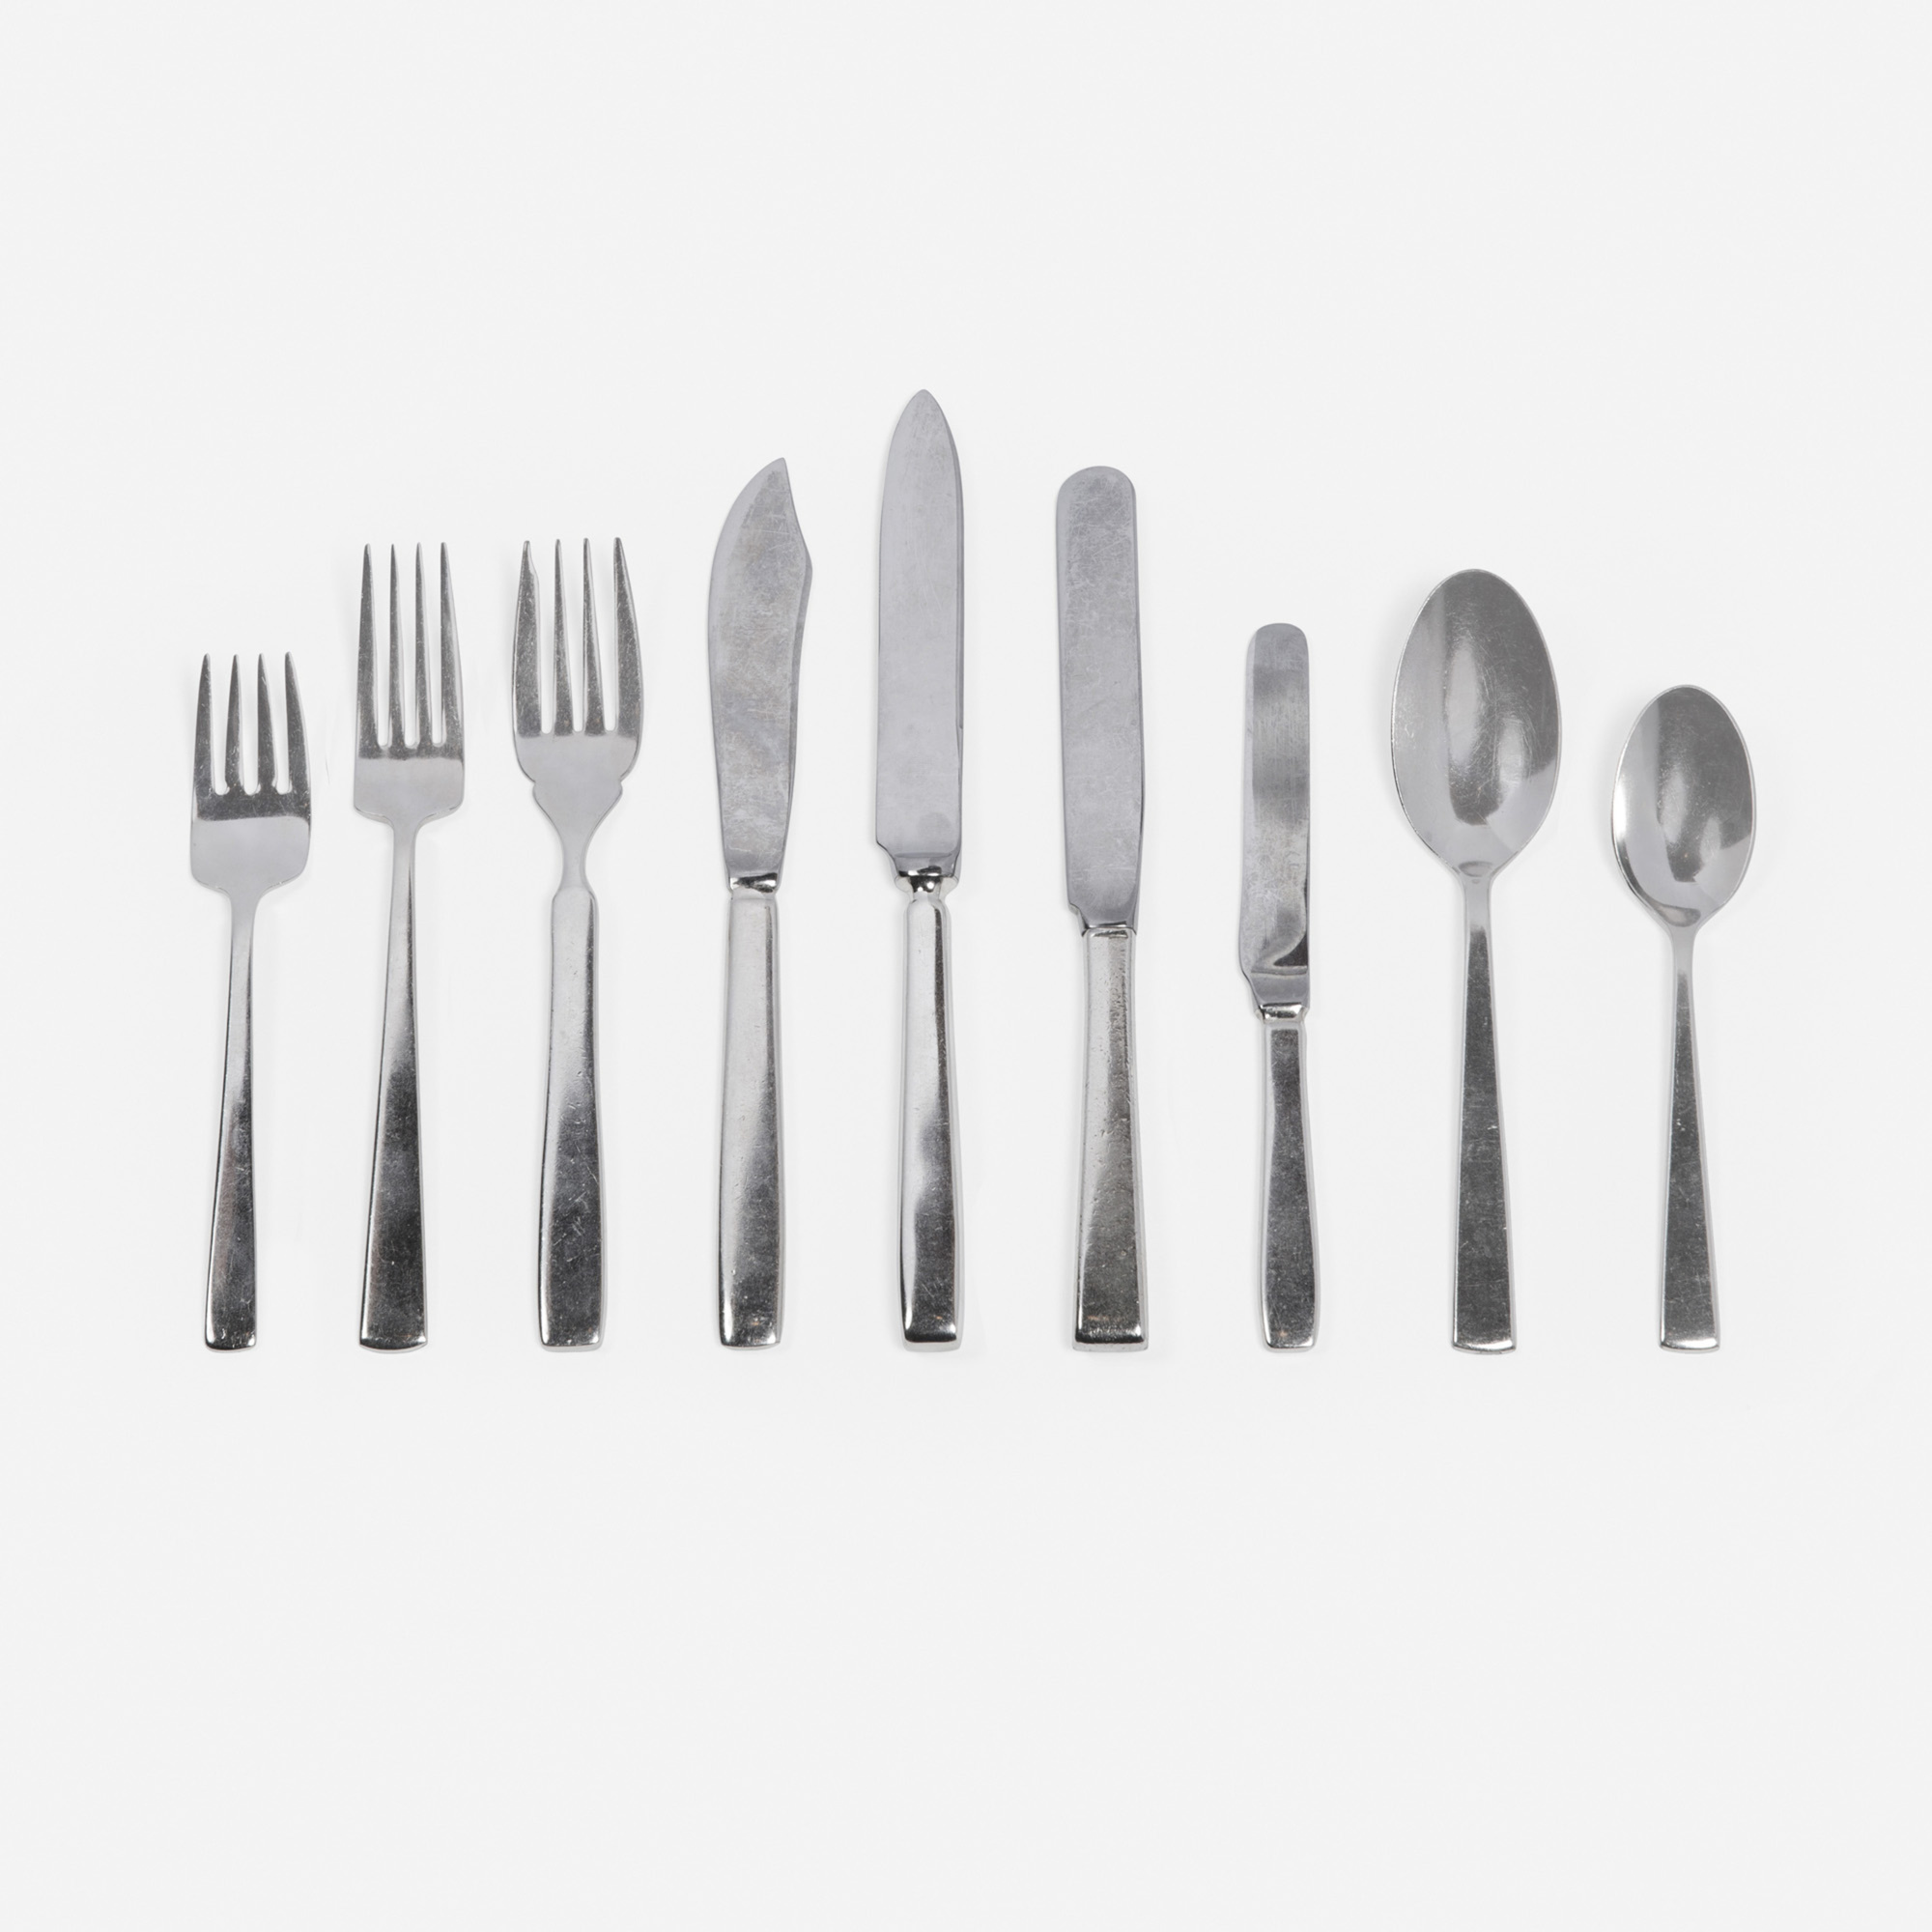 337: Garth and Ada Louise Huxtable / Four Seasons Luncheon flatware from the Grill Room, service for twelve (1 of 1)